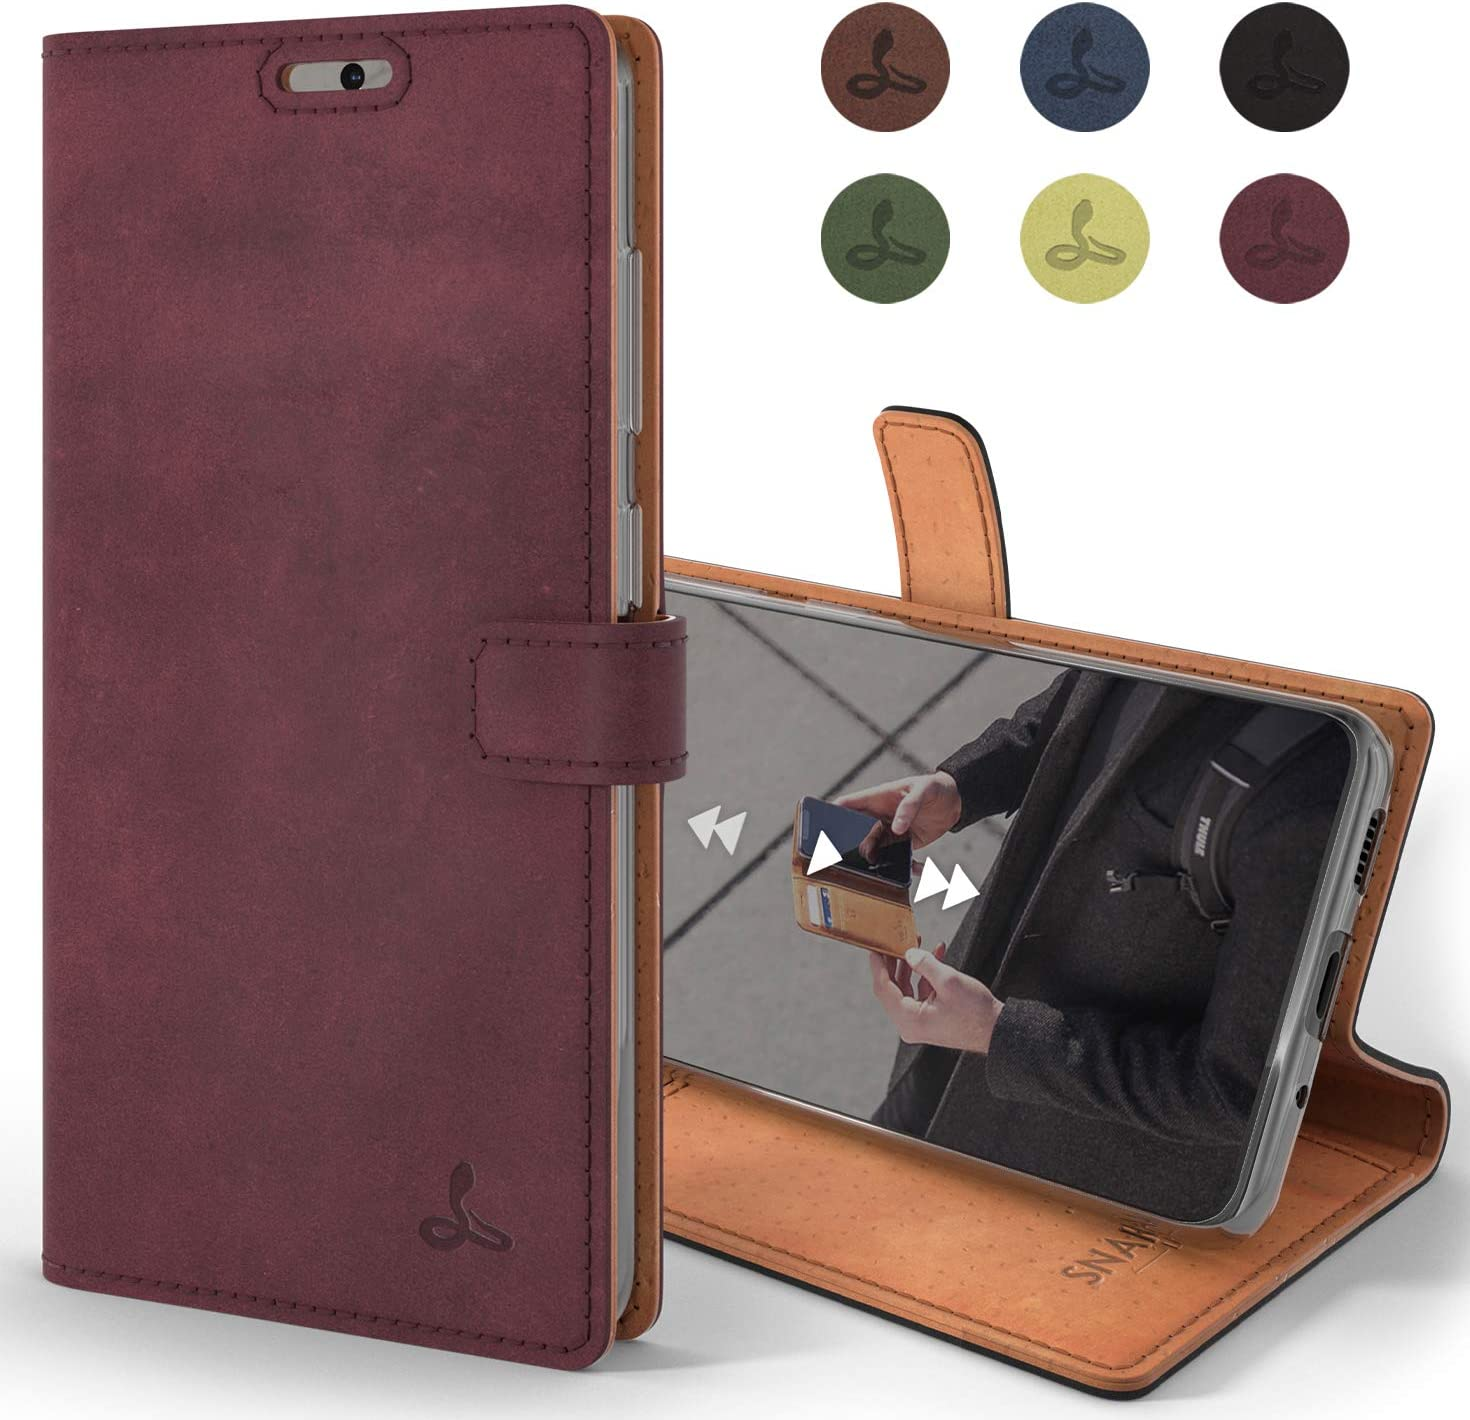 Snakehive Samsung Galaxy S20 Ultra Case Genuine Leather Wallet with Viewing Stand and Card Slots Plum Flip Cover Gift Boxed and Handmade in Europe for Samsung Galaxy S20 Ultra -